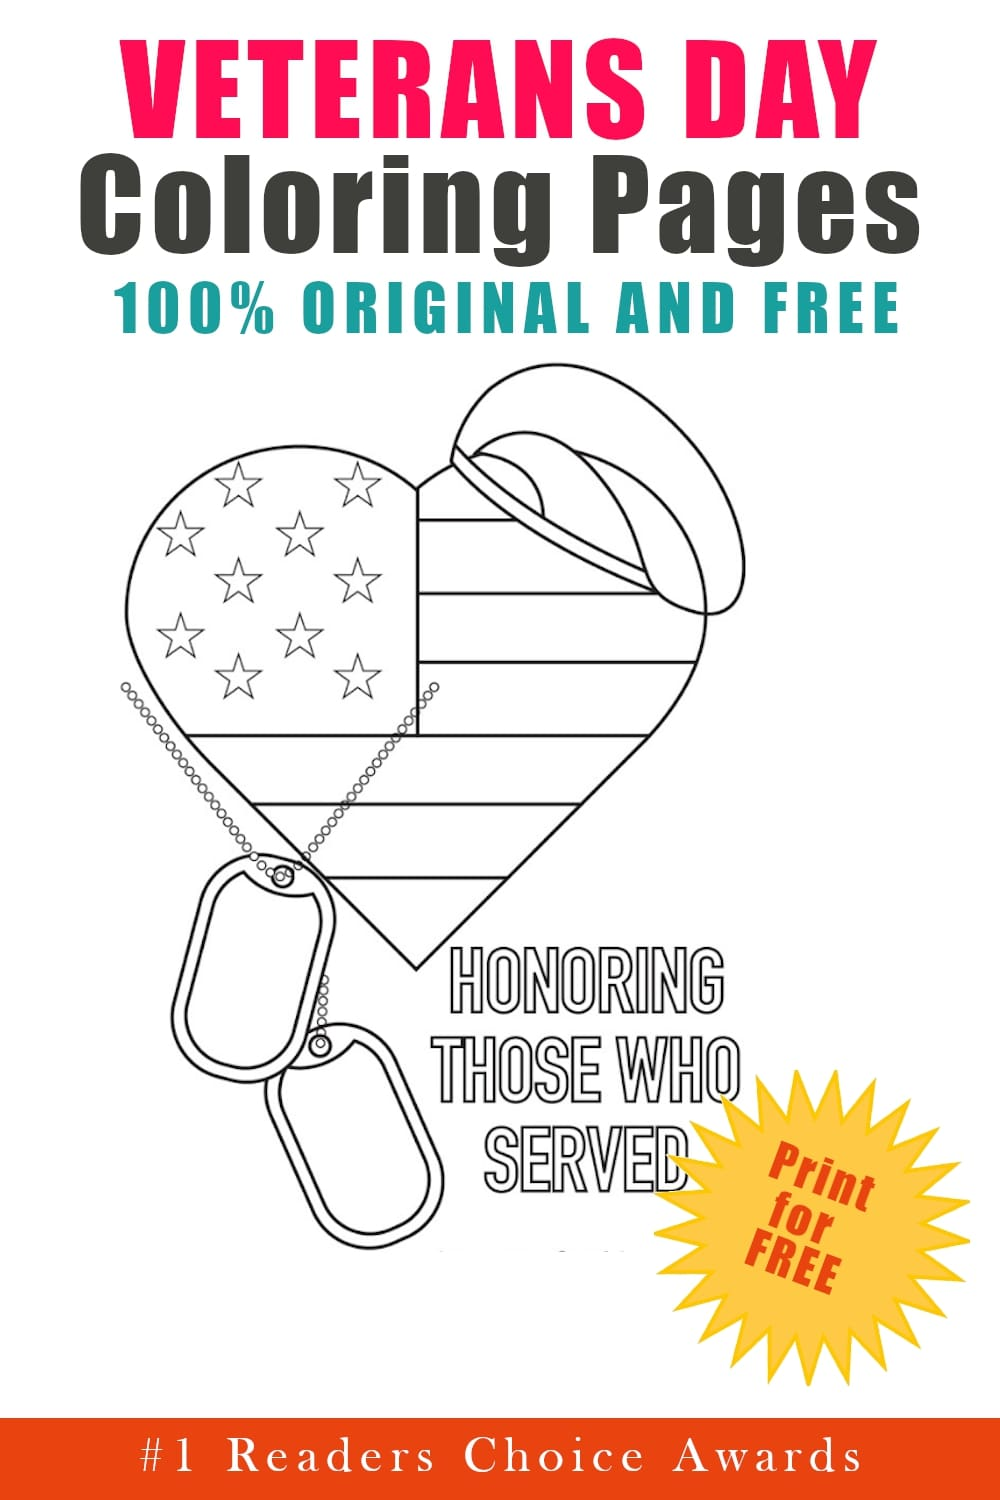 original and free veteran's day coloring pages